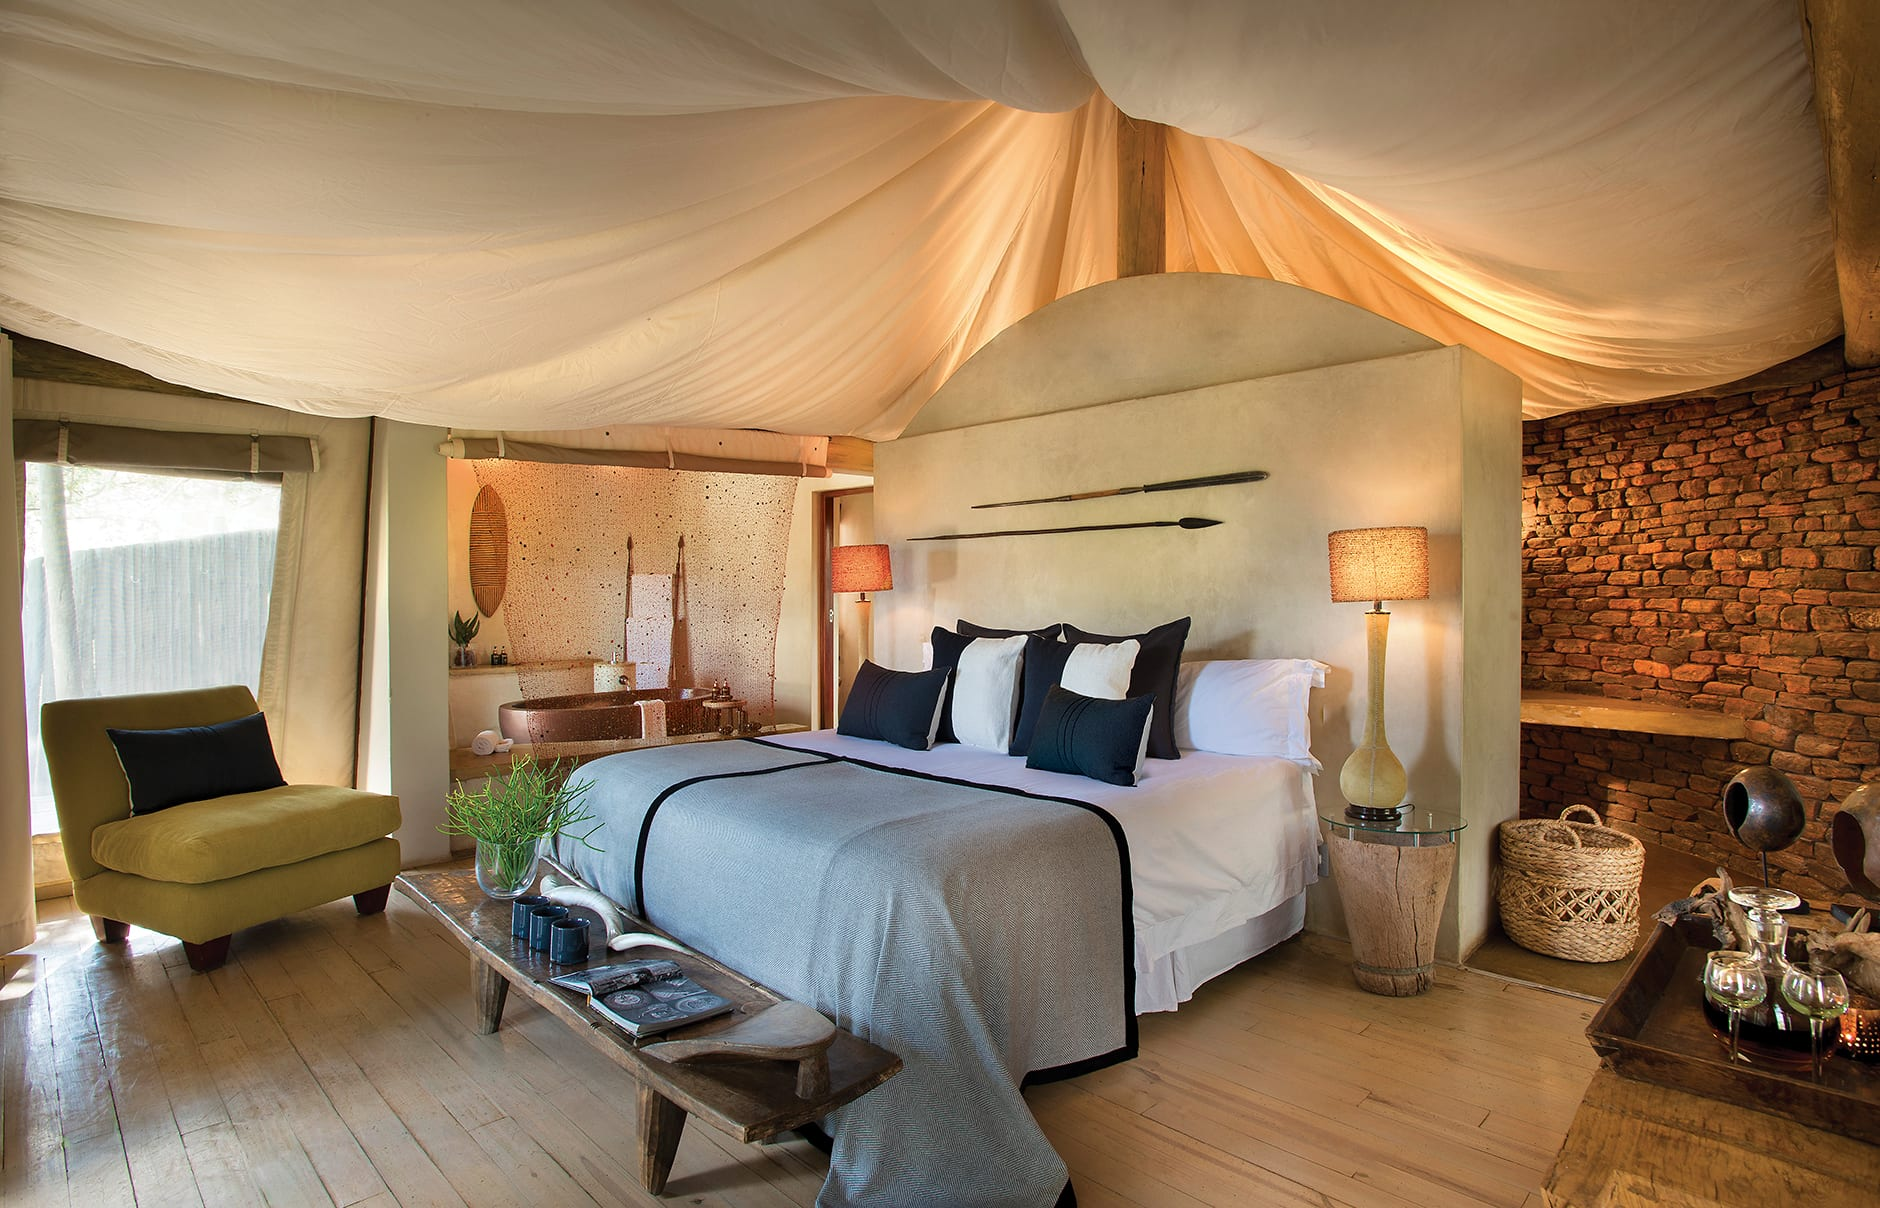 Bedroom interior. Marataba Safari Company, South Africa. © Marataba